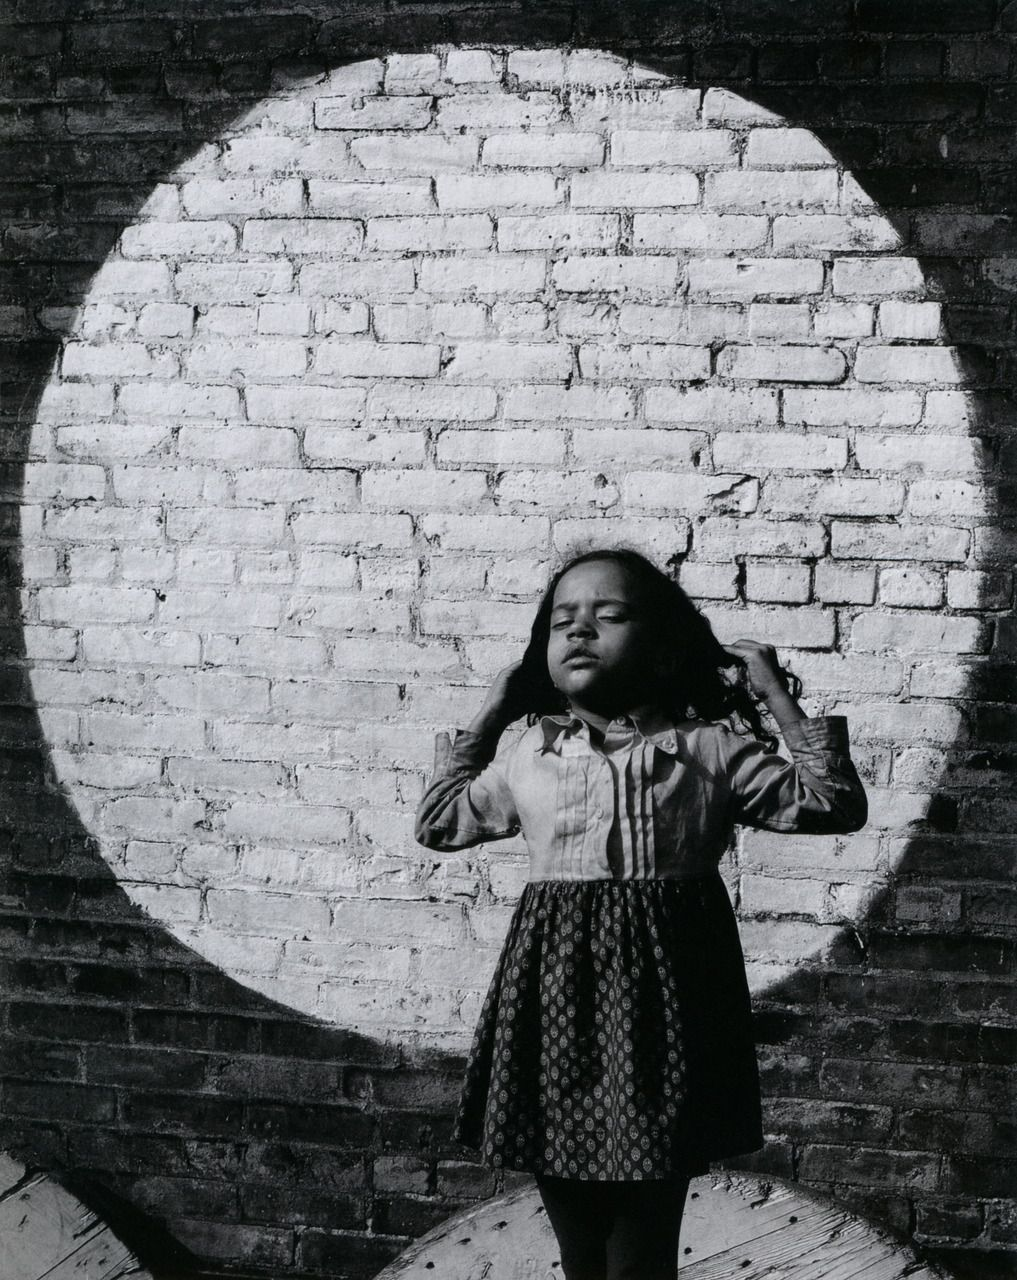 Arthur Tress :: Girl in Painted Spotlight, NYC, 1968 more [+] by this photographer